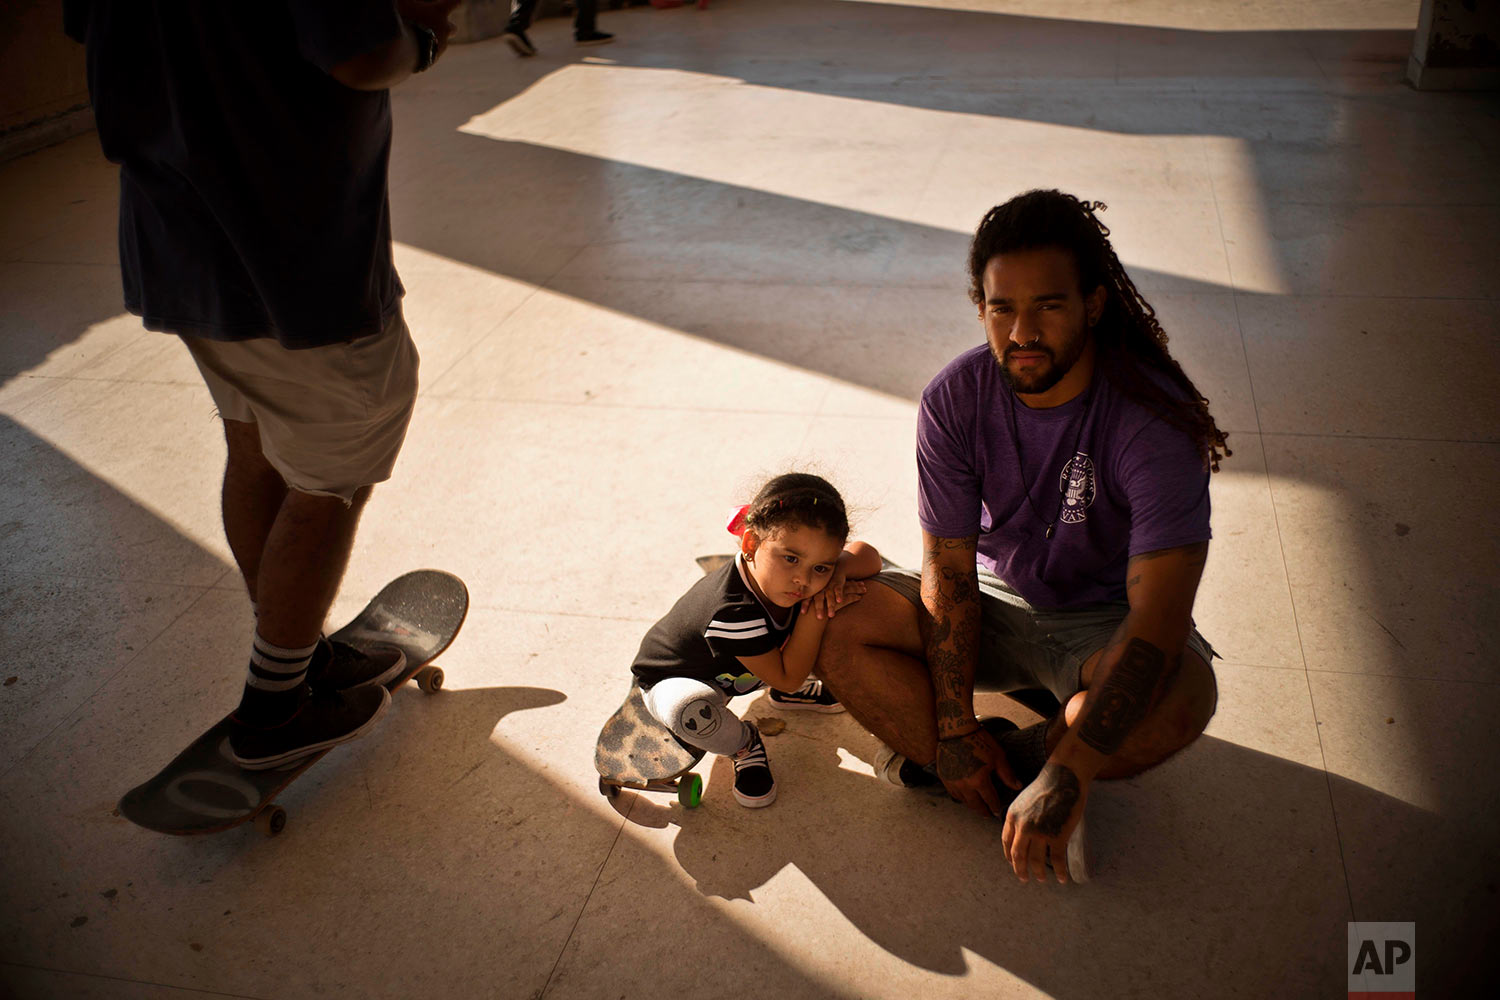 """In this April 12, 2018 photo, Yojany Perez, 28, poses for a photo with his 2-year-old daughter Coraline Perez Padilla, at a skateboarding park in Havana, Cuba. Perez, who has an economy degree but works in maintenance, said with the arrival of a new Cuban president on April 19, people are expecting an improvement in the economy, for prices to decline or salaries rise. """"Our current economy does not give for many luxuries,"""" Perez said. (AP Photo/Ramon Espinosa)"""